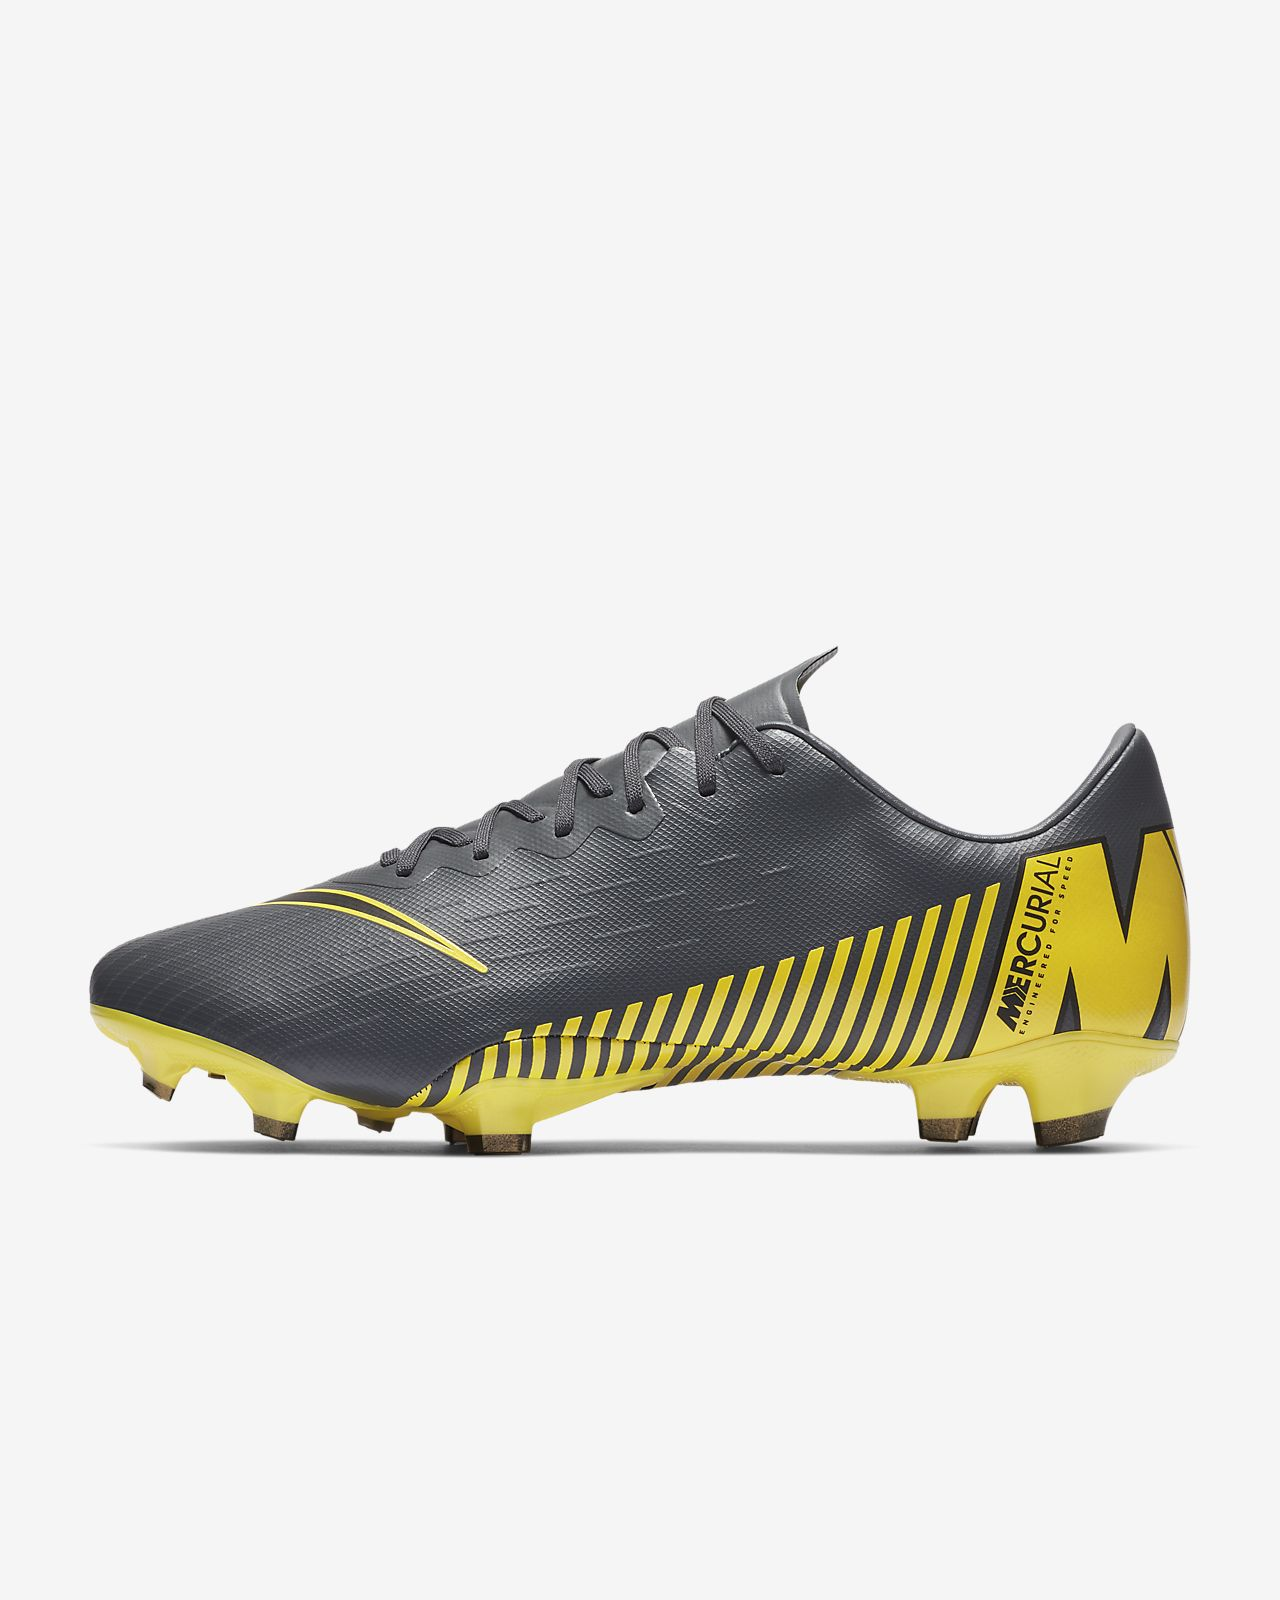 newest 01627 01bb8 Nike Vapor 12 Pro FG Game Over Botas de fútbol para terreno firme